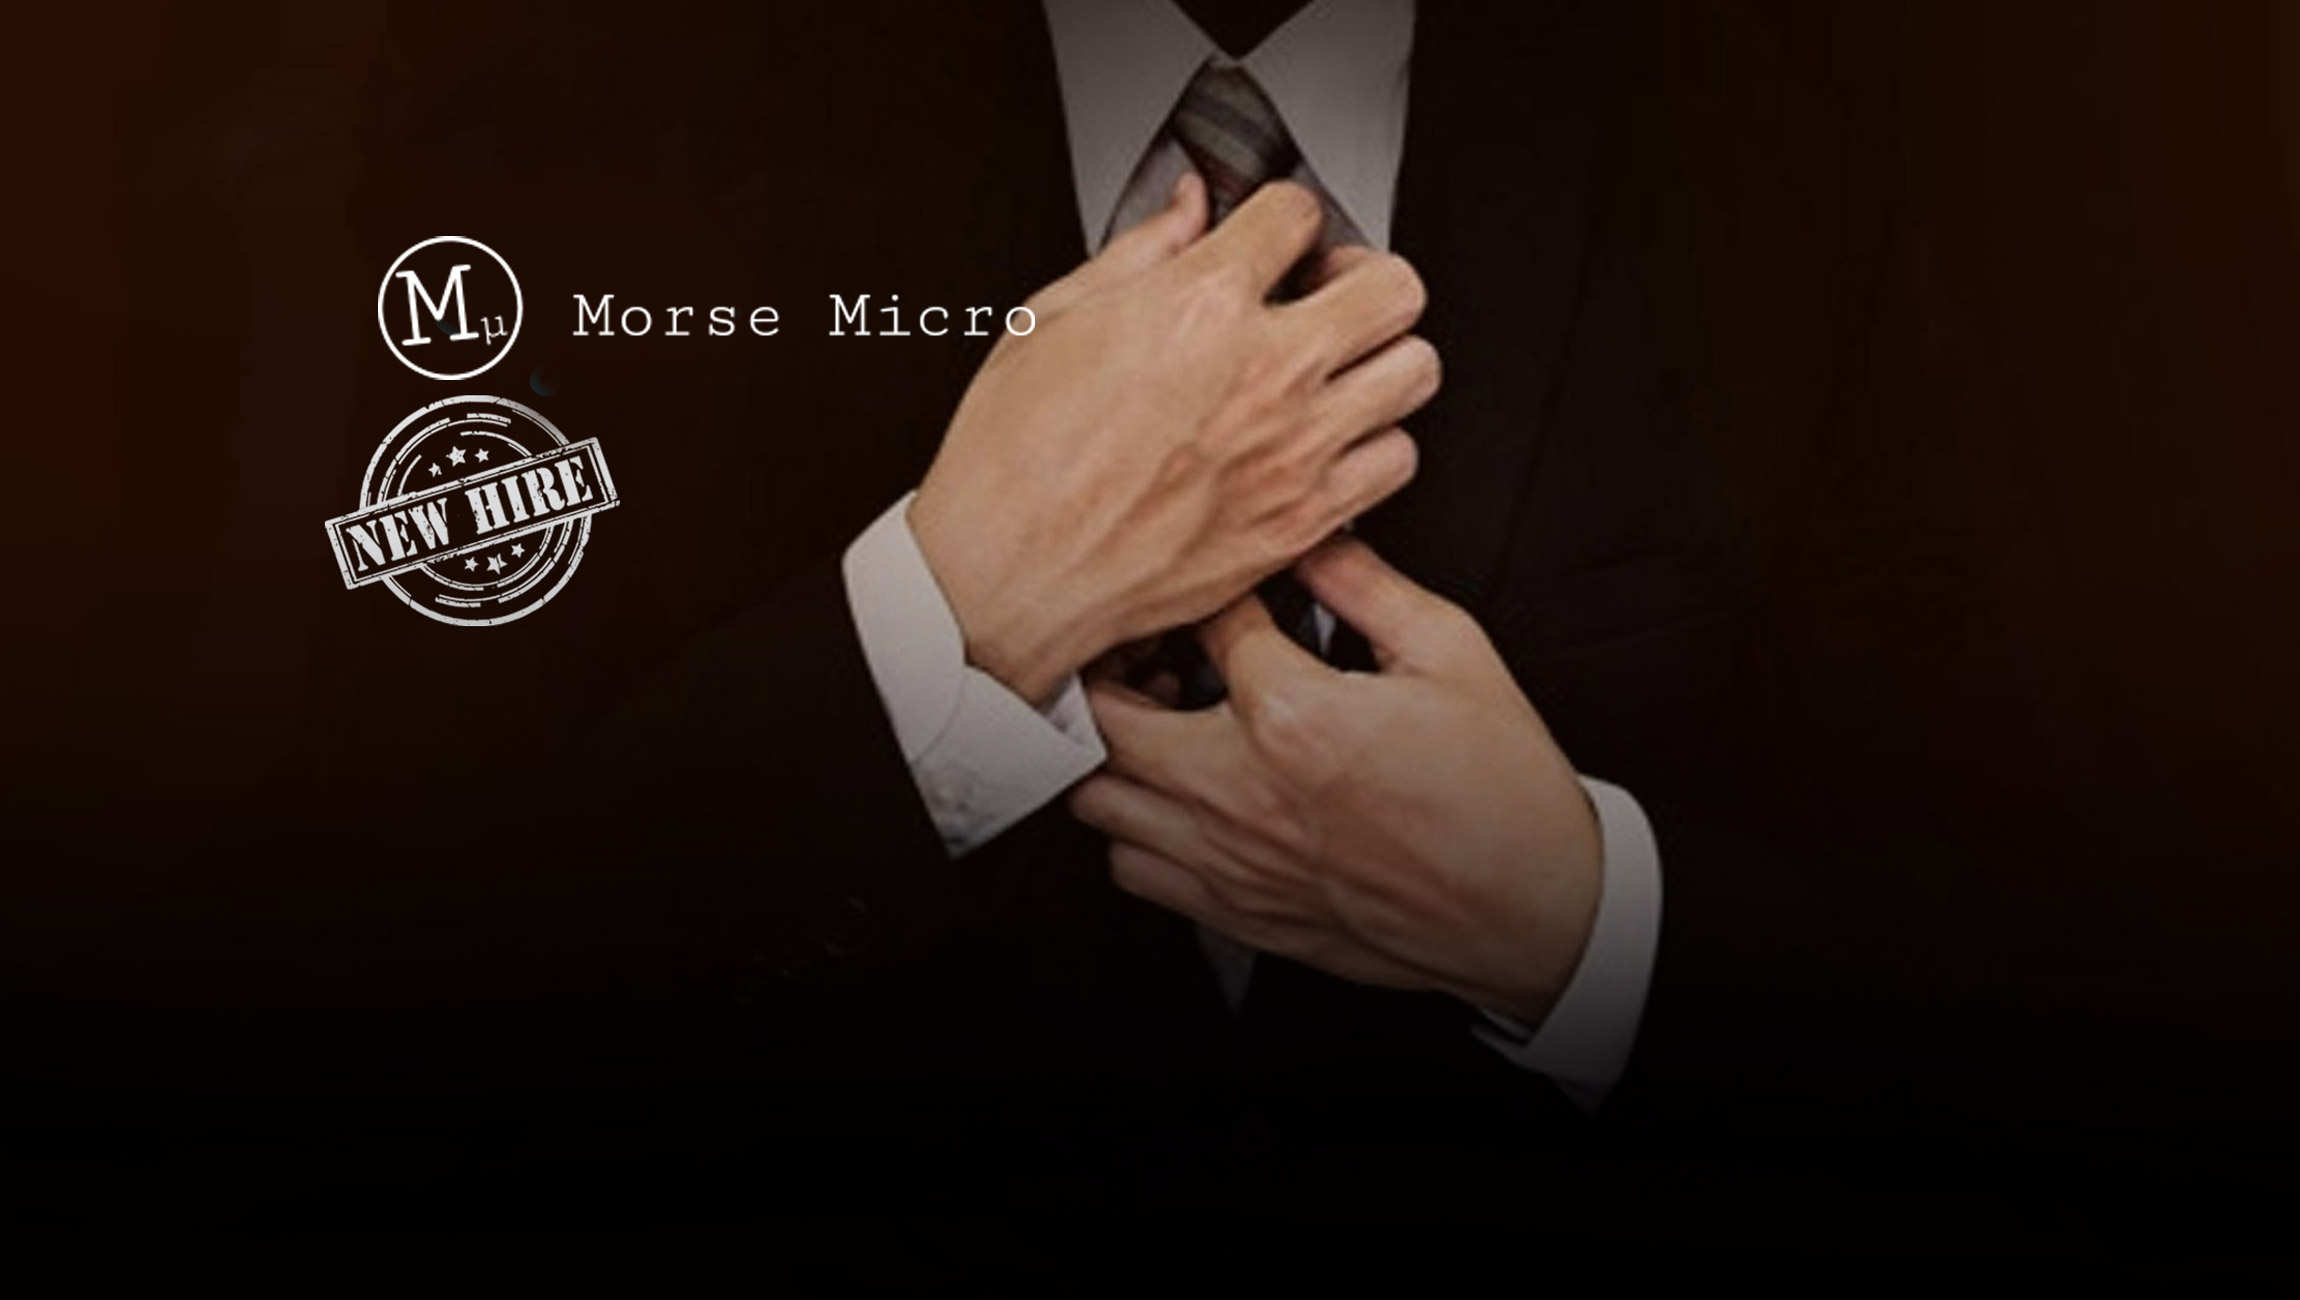 Morse Micro Names Vahid Manian as Chief Operations Officer